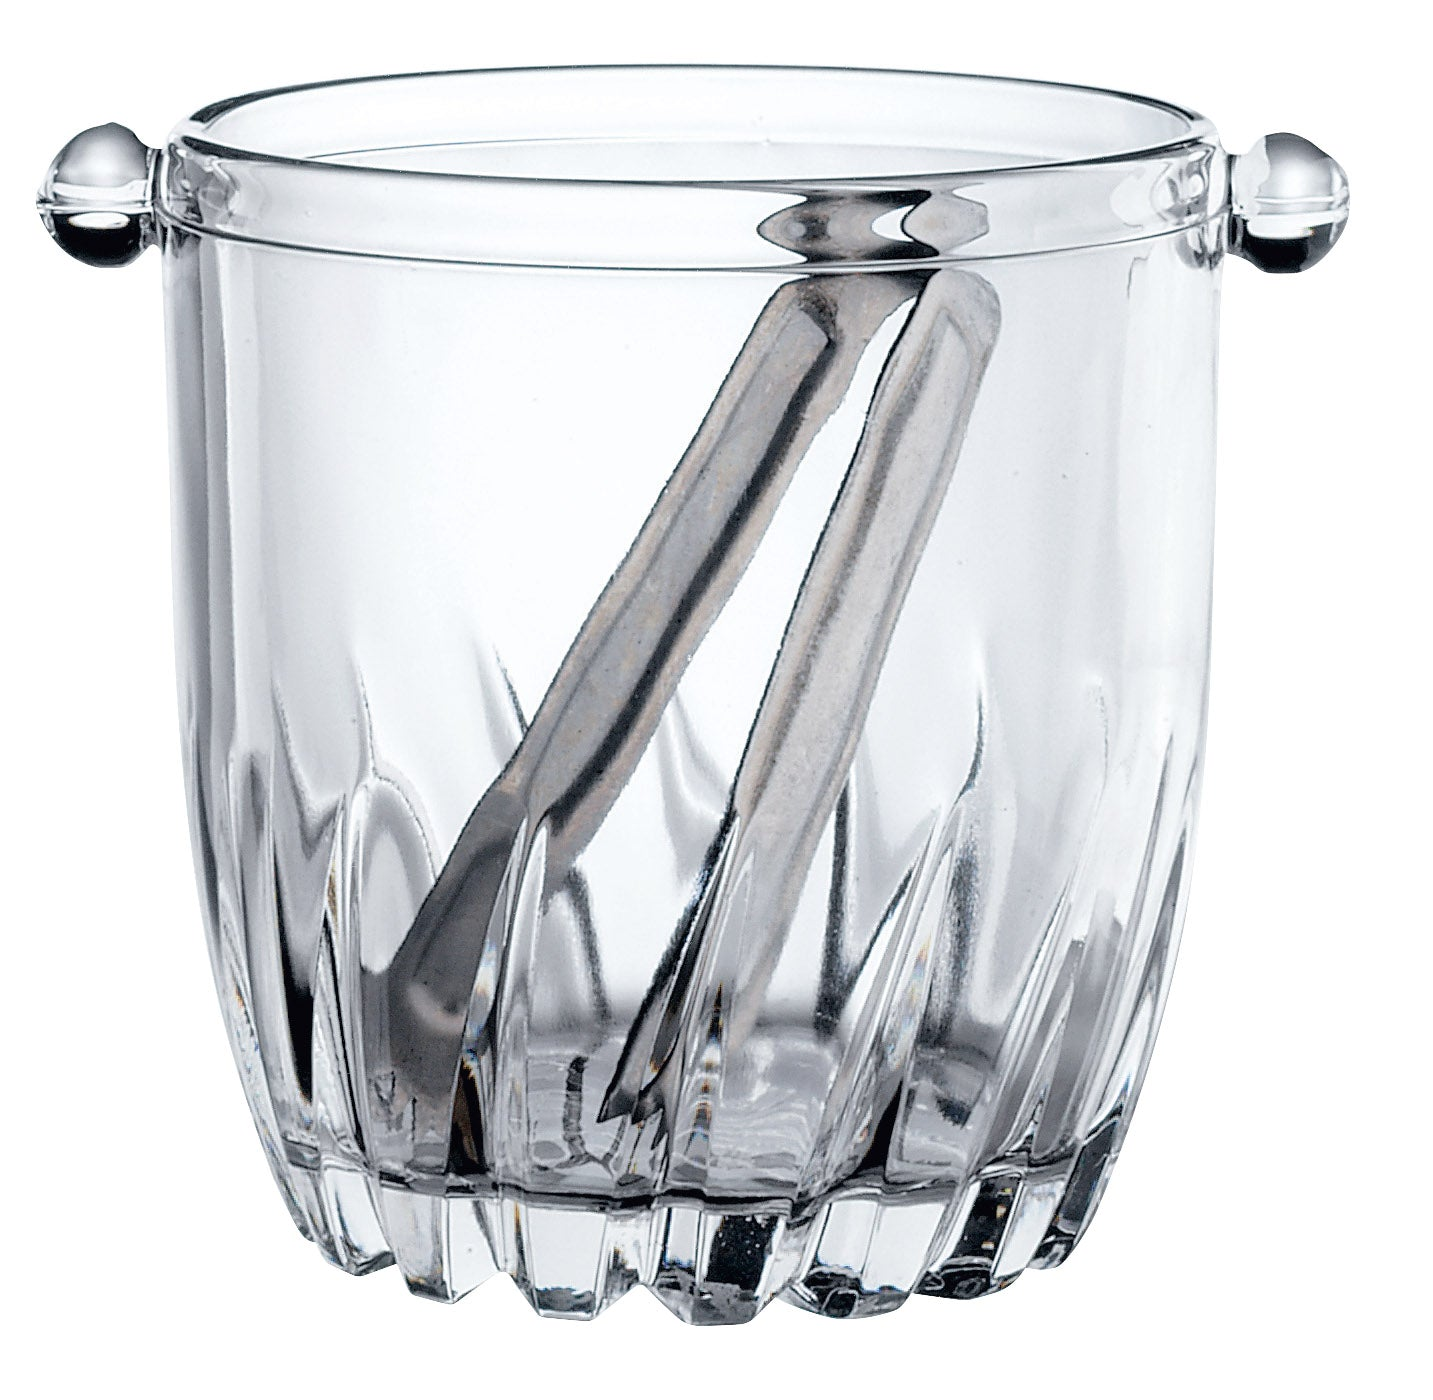 ICE BUCKET WITH TONGS 95cl (12) H128mm W151mm - MONCAYO - BR2.23502